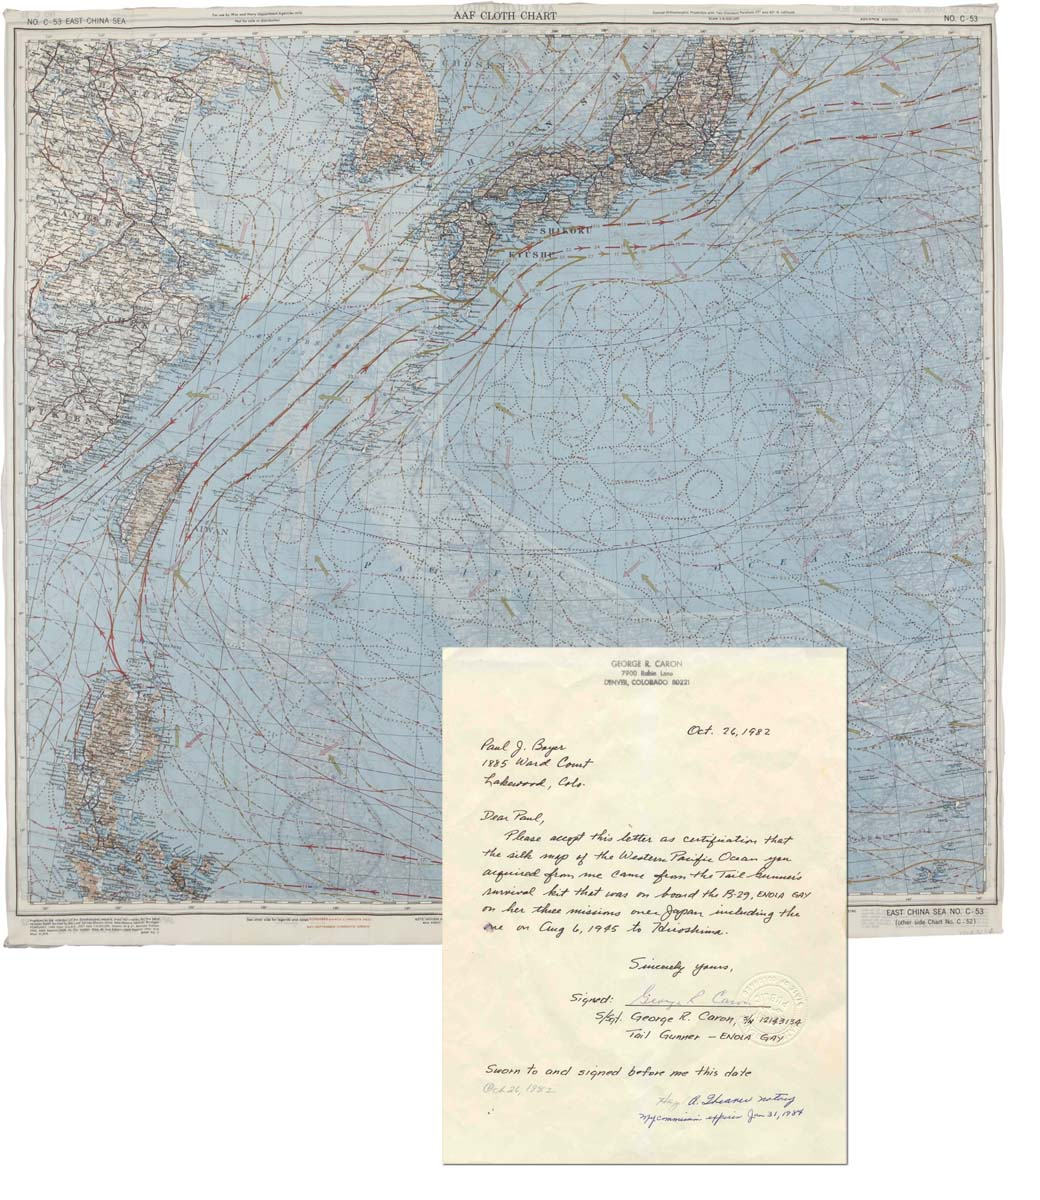 Enola Gay memorabilia Maps Enabling the Dropping of the Atomic Bomb Japan